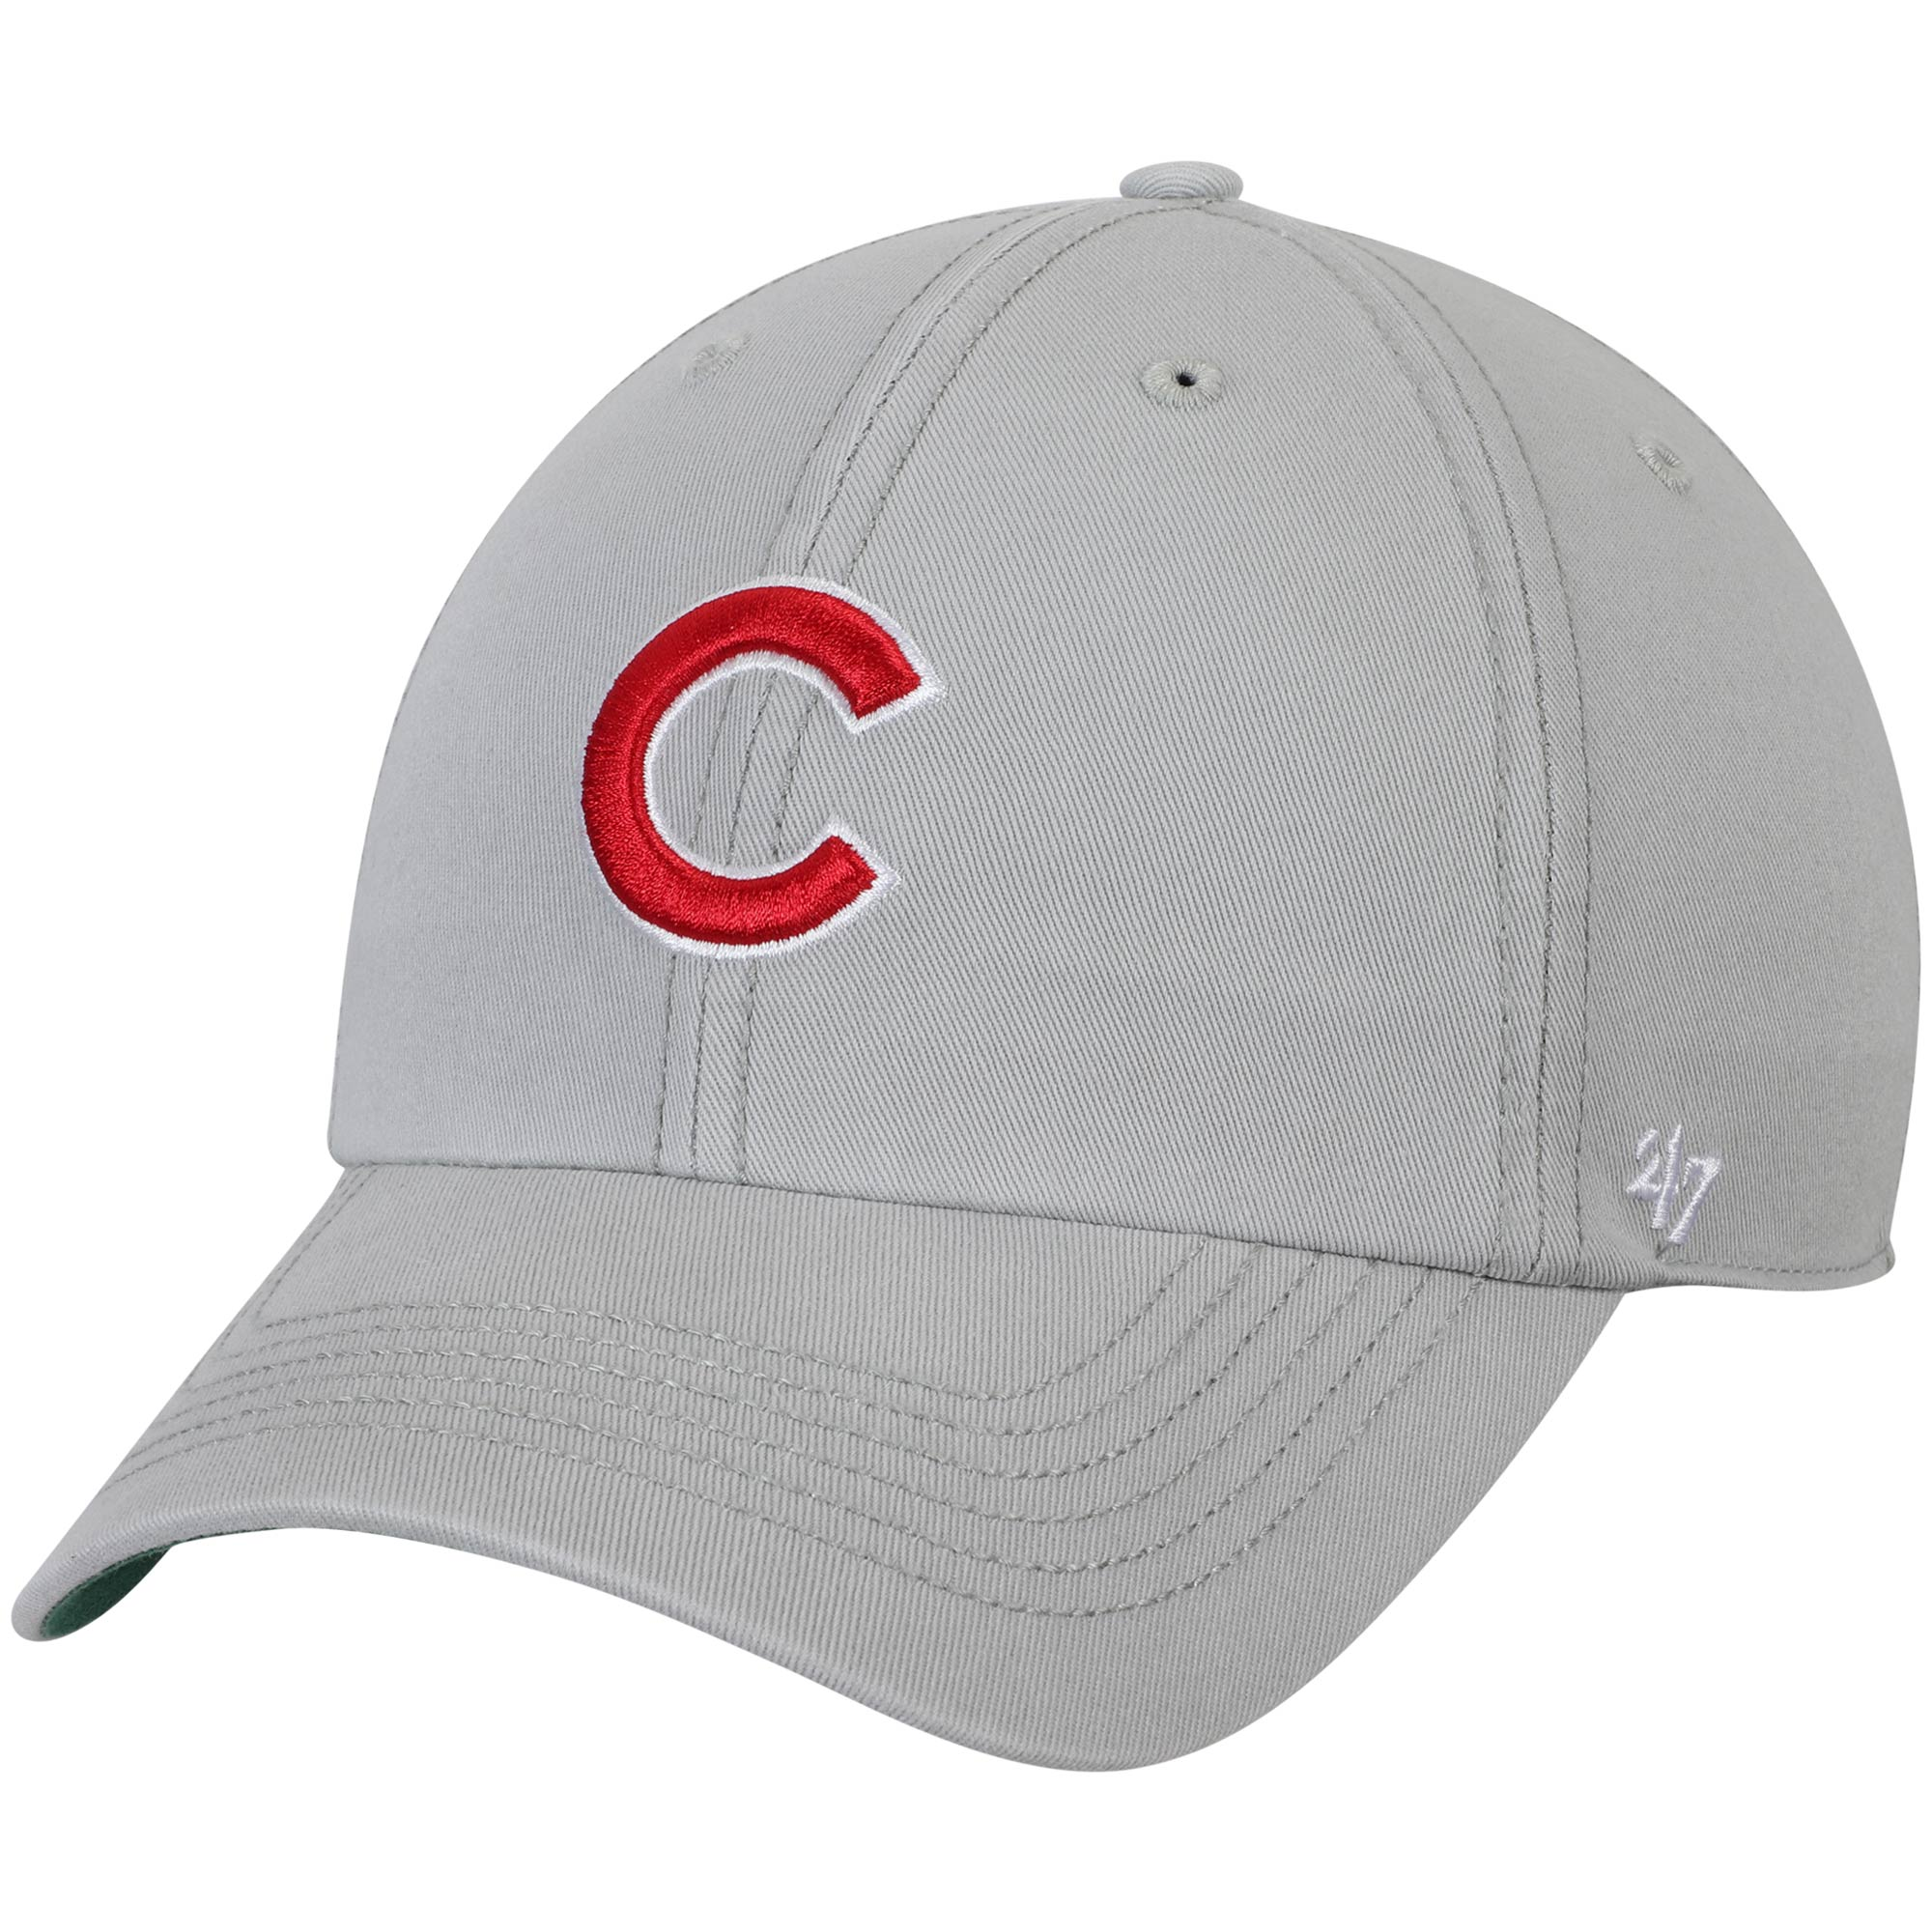 Chicago Cubs '47 Primary Logo Franchise Fitted Hat - Gray